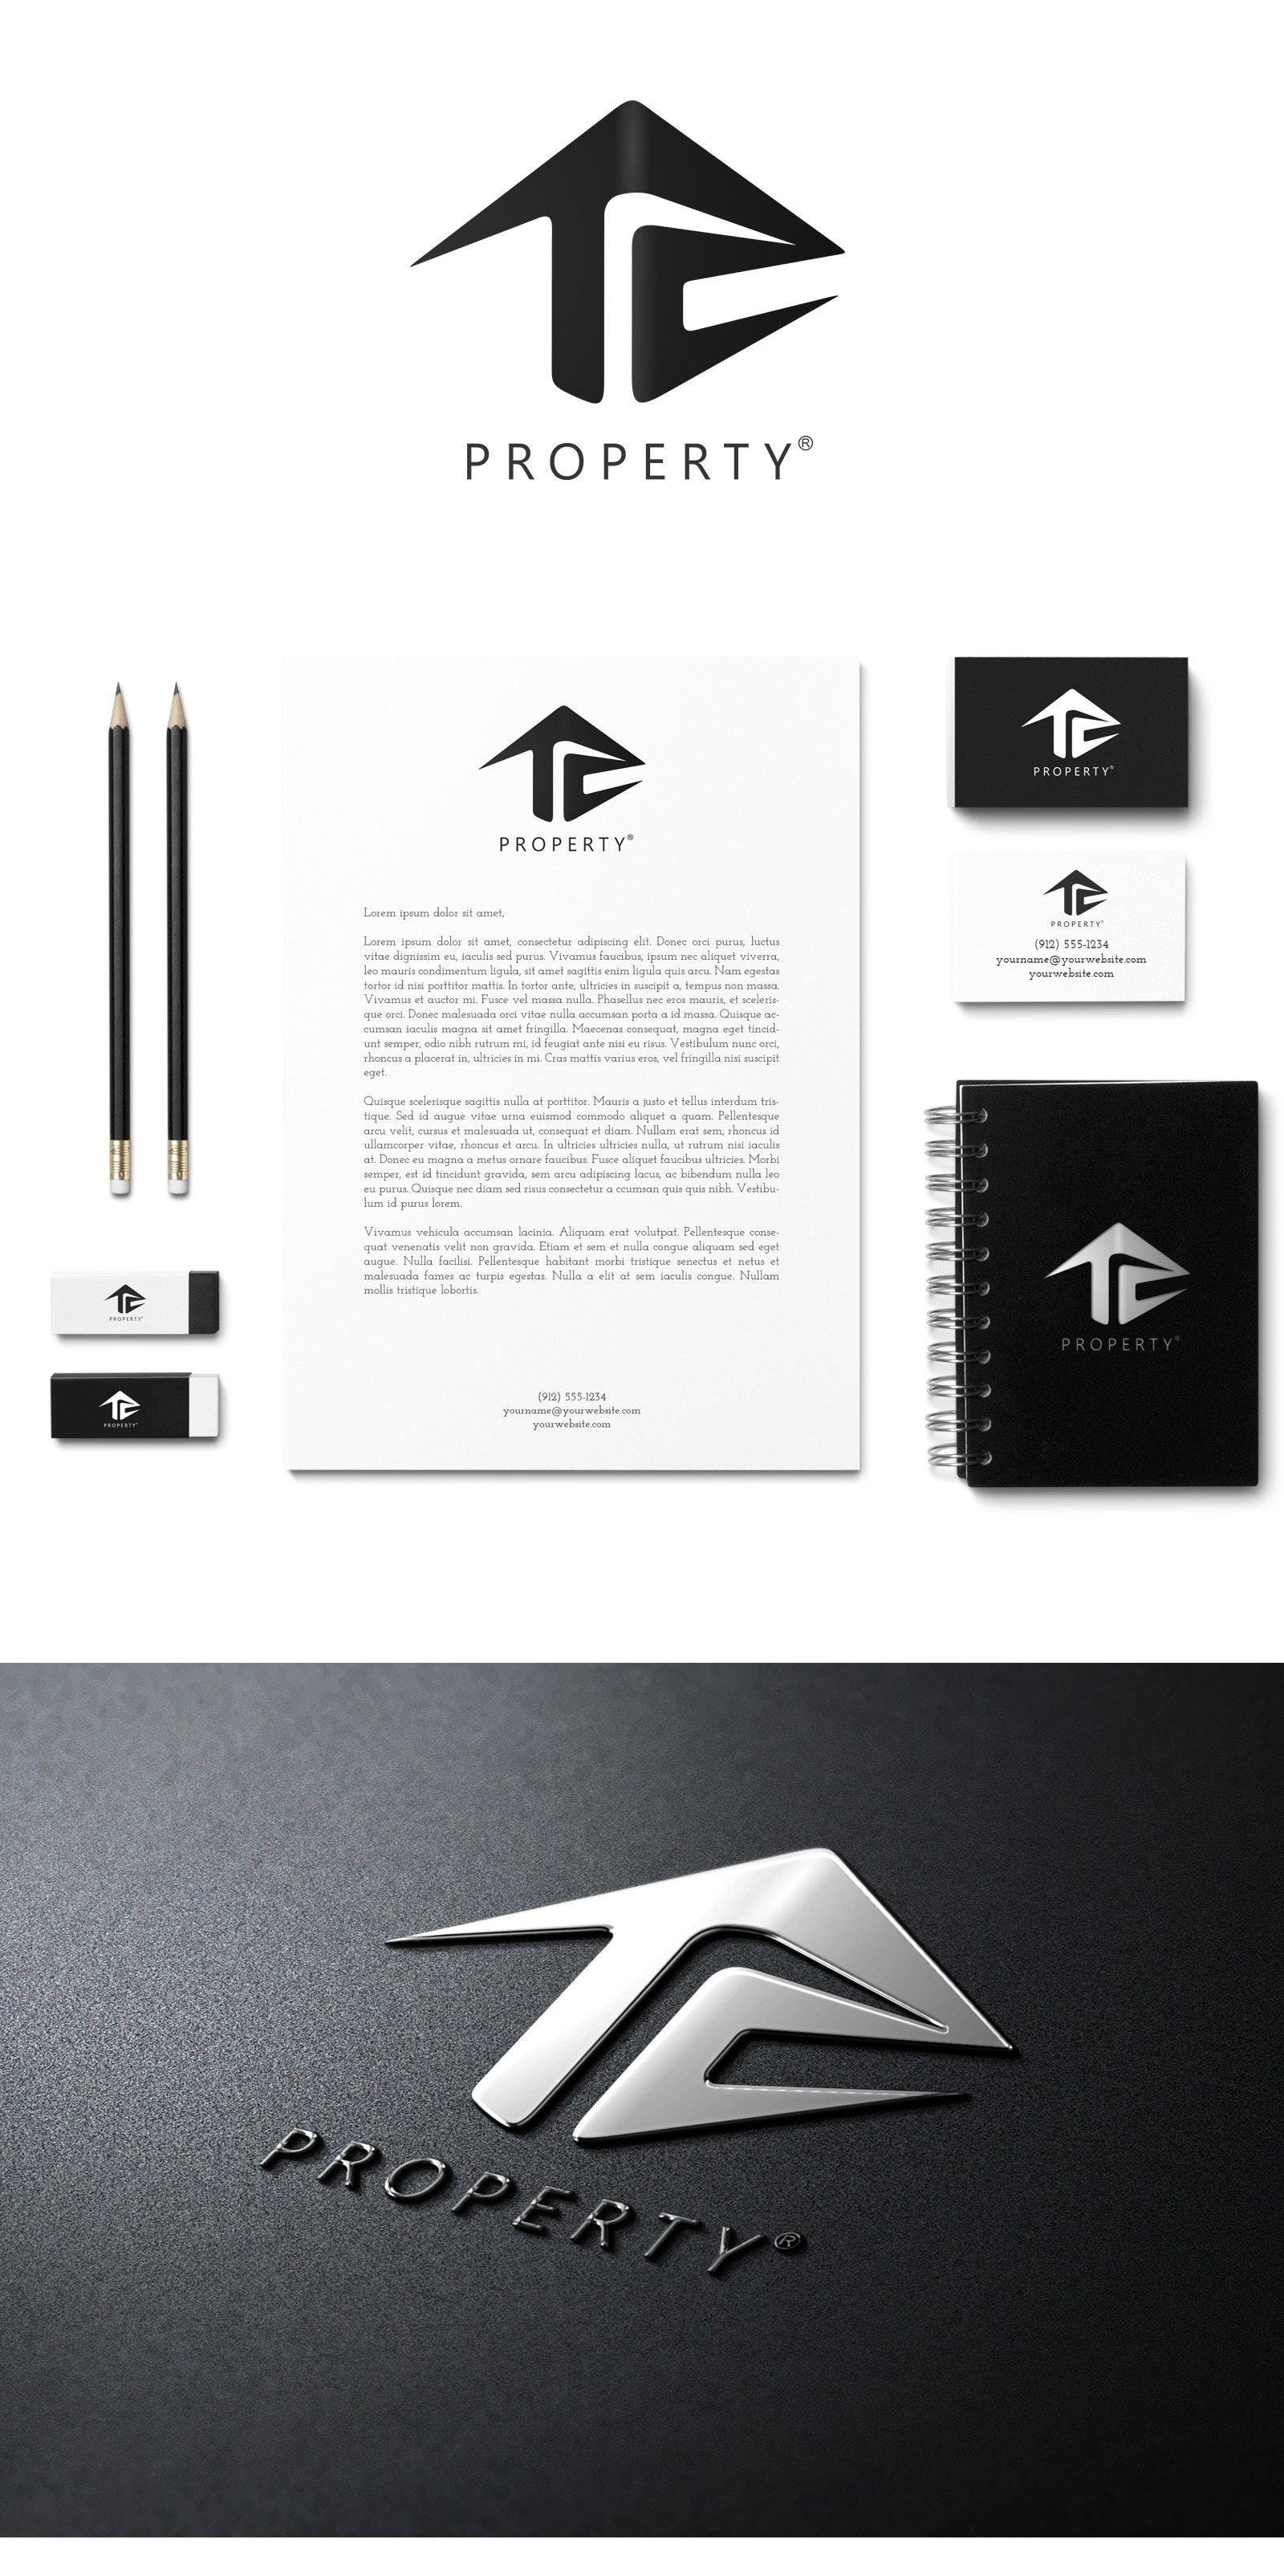 T2 PROPERTY business card